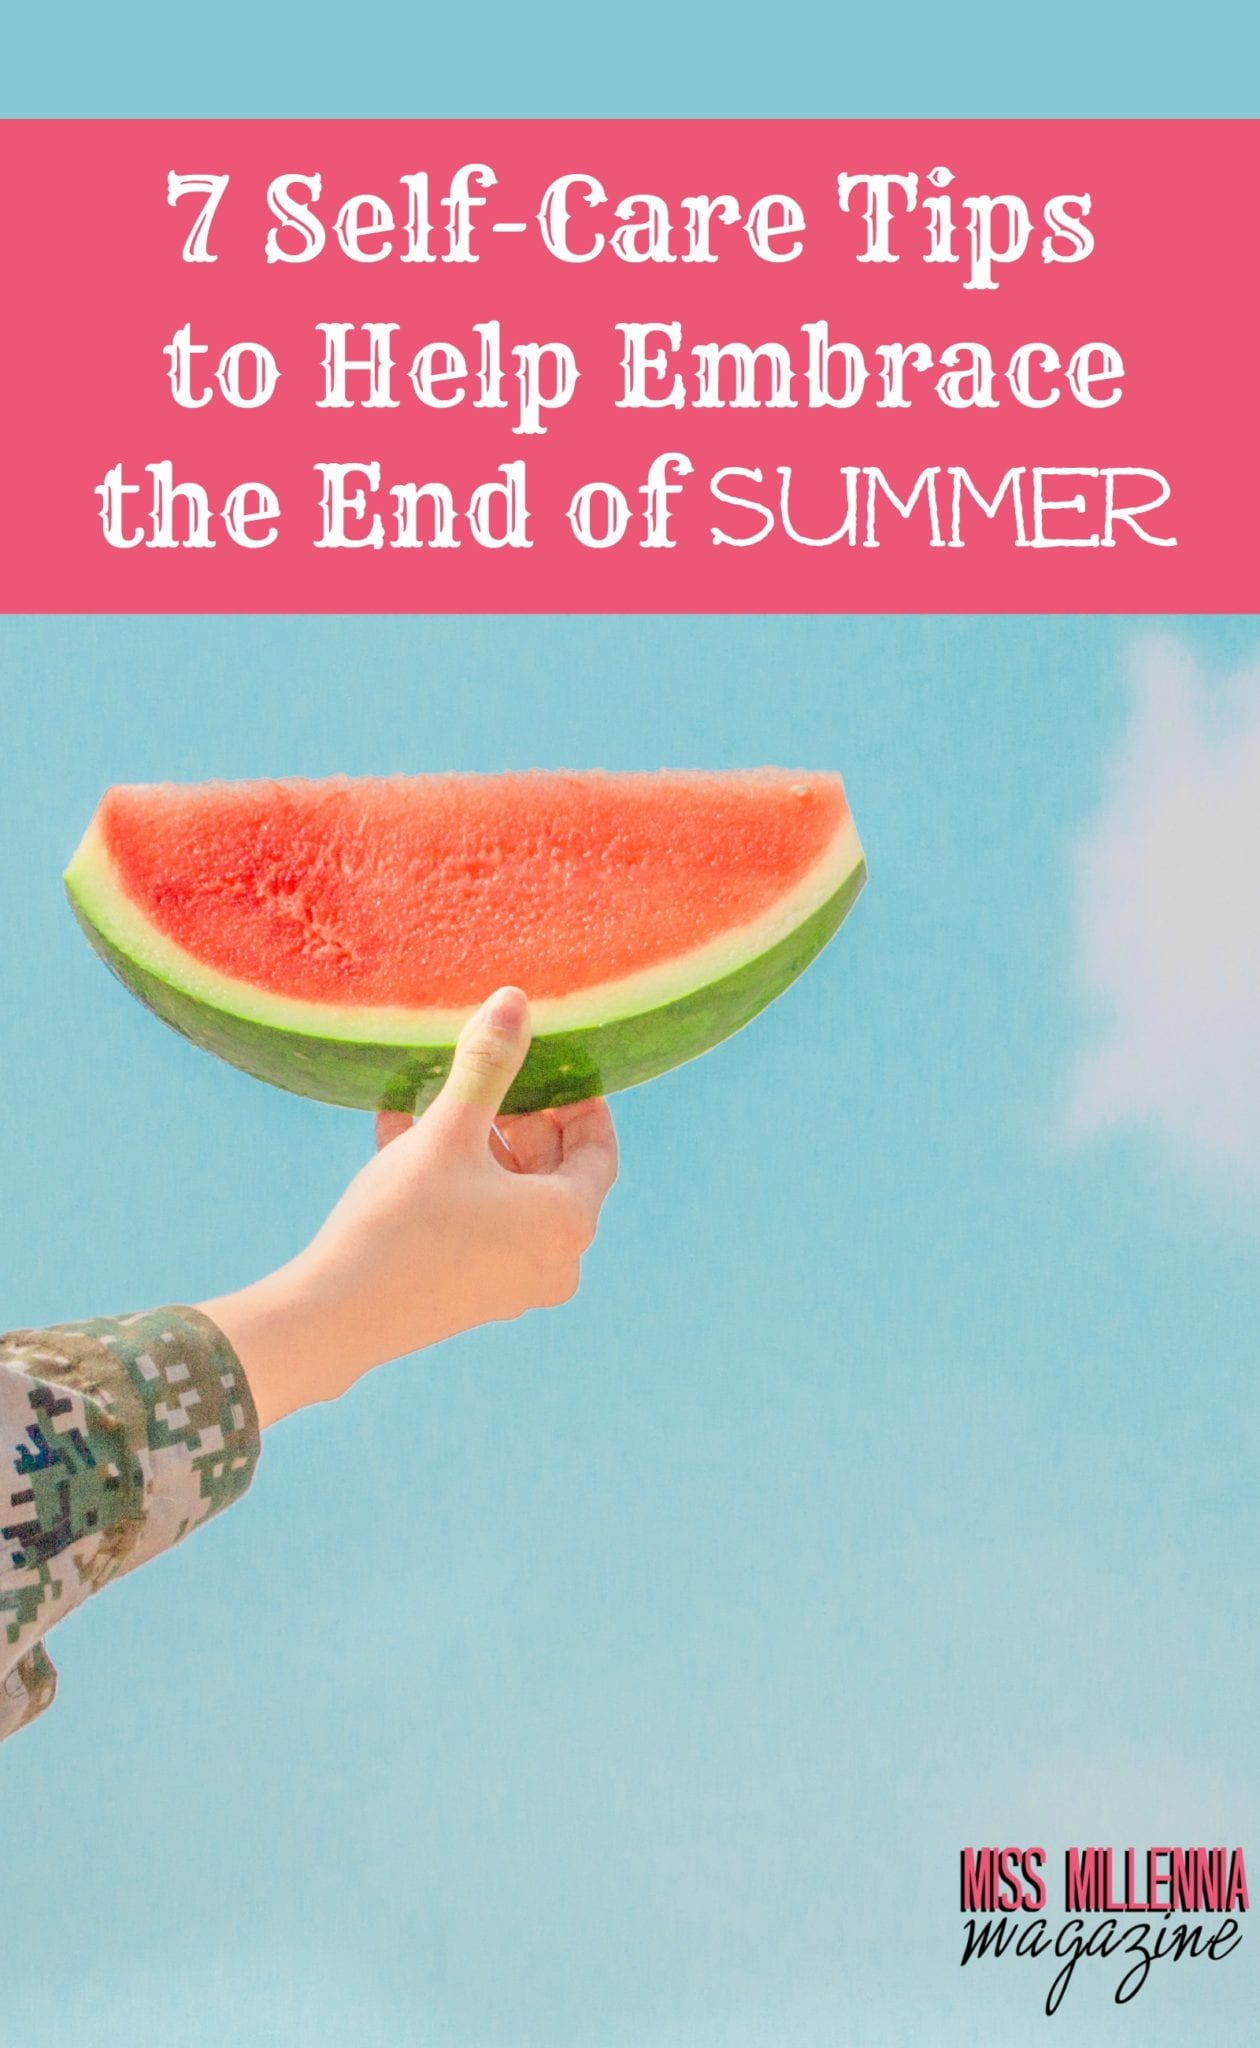 7-self-care-tips-to-help-embrace-the-end-of-summer